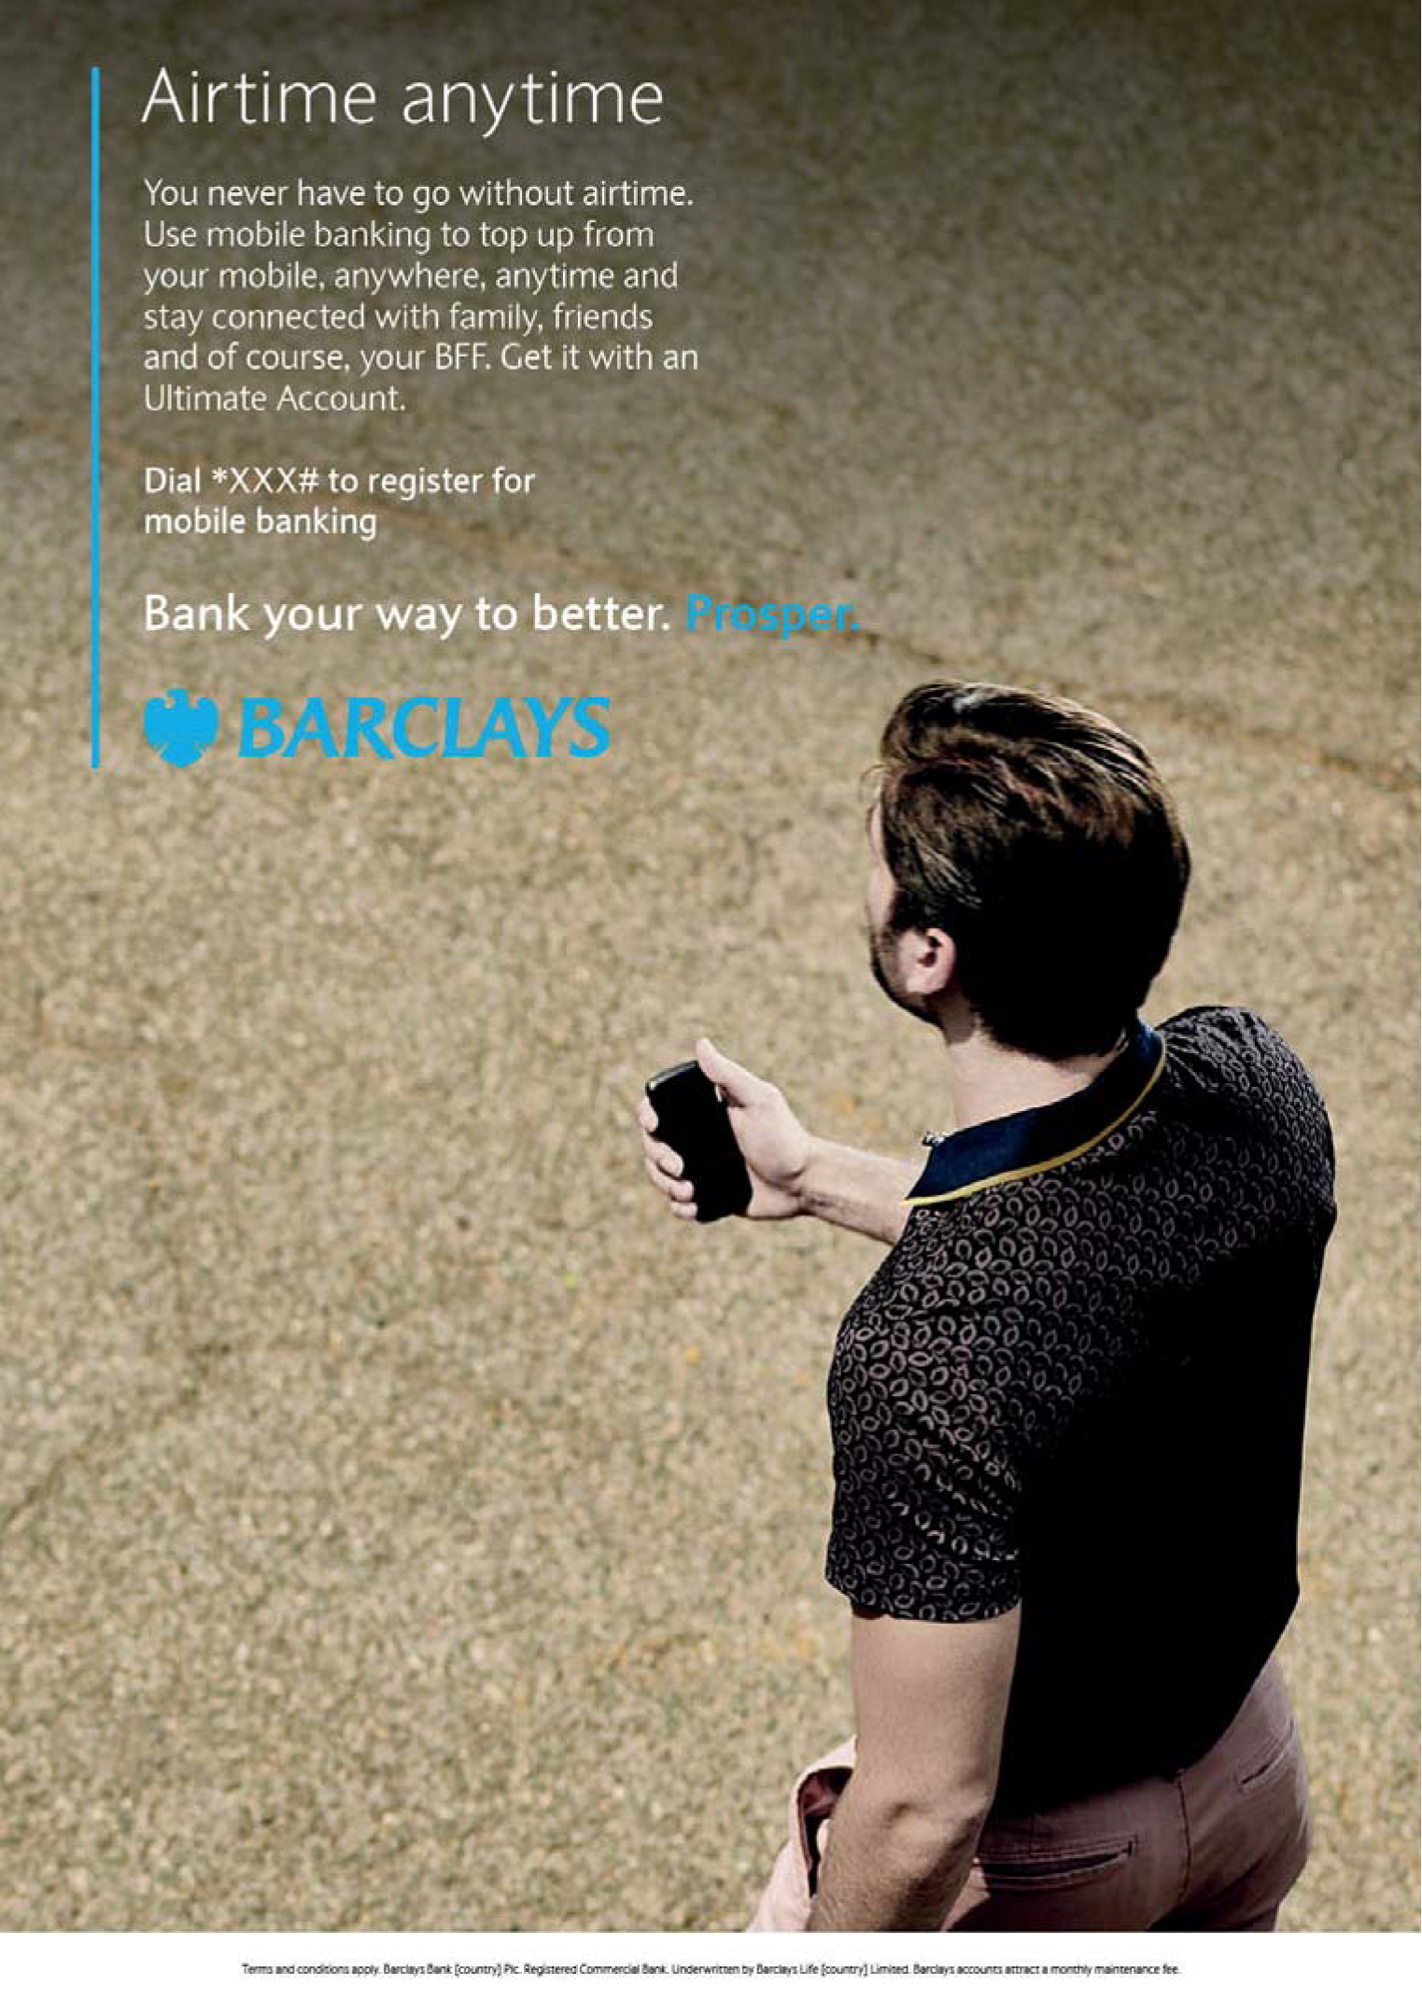 Barclays Personal Banking Campaign Toolkit 26 APRIL-82.jpg